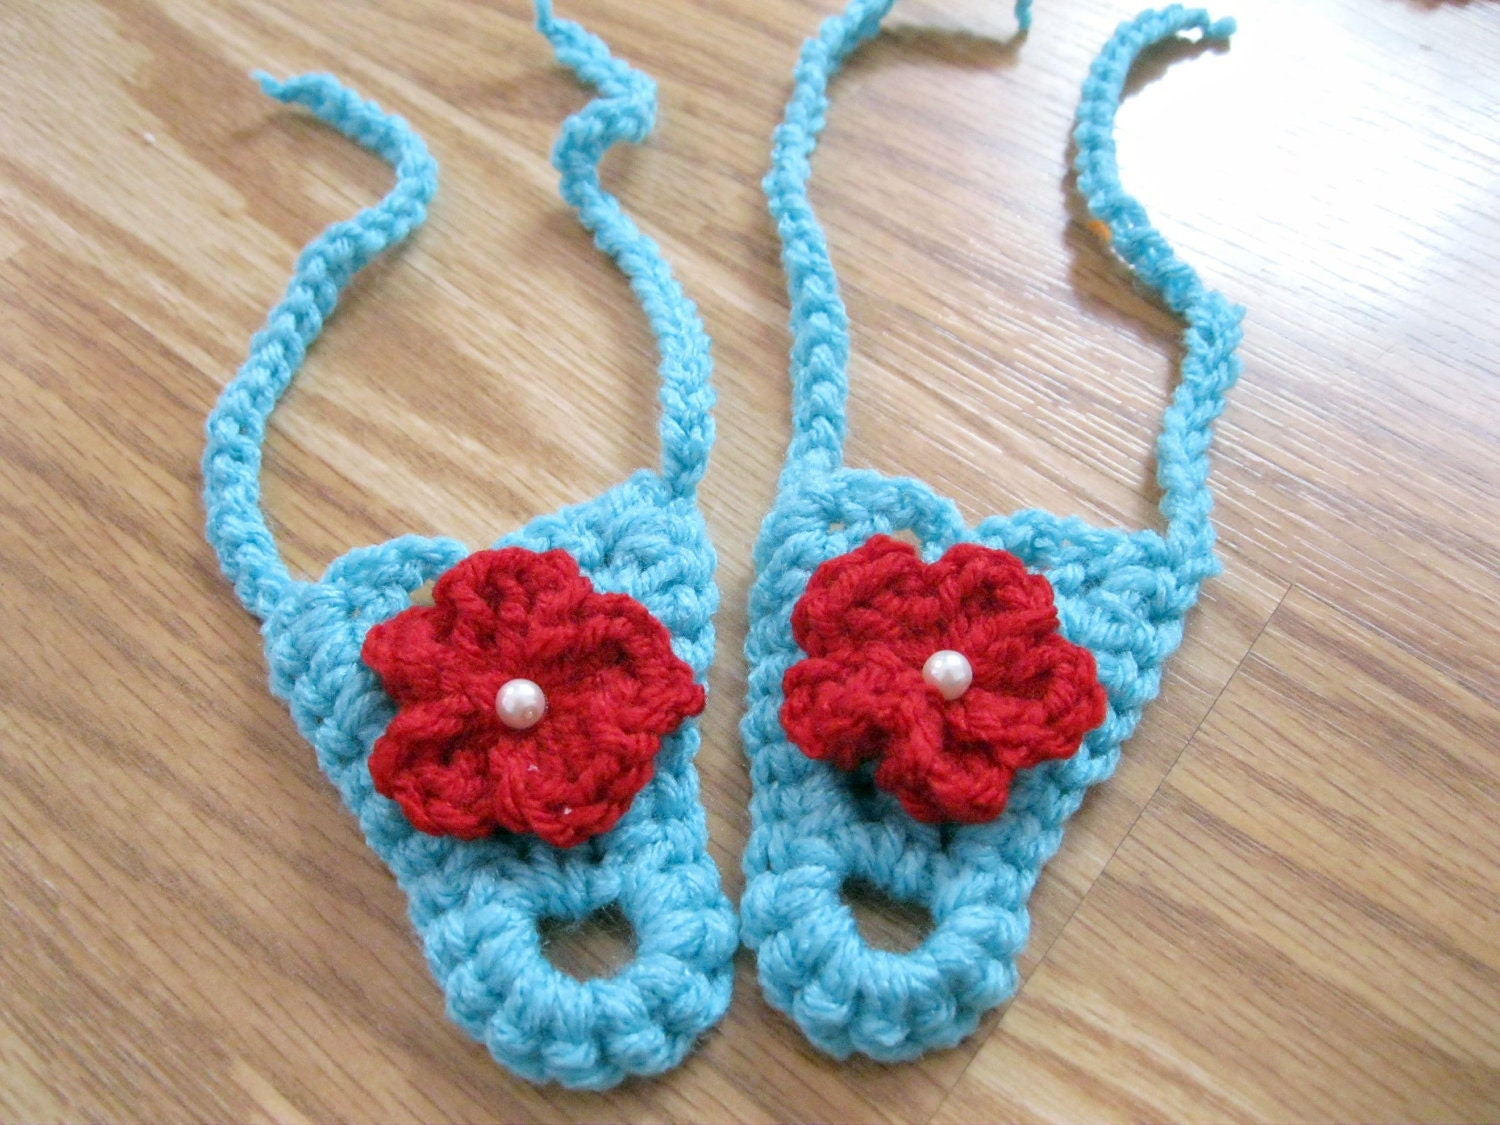 Free Crochet Patterns For Baby Boy Hat And Booties : Aqua Red and White Crochet Baby Barefoot Sandals by RindCounty